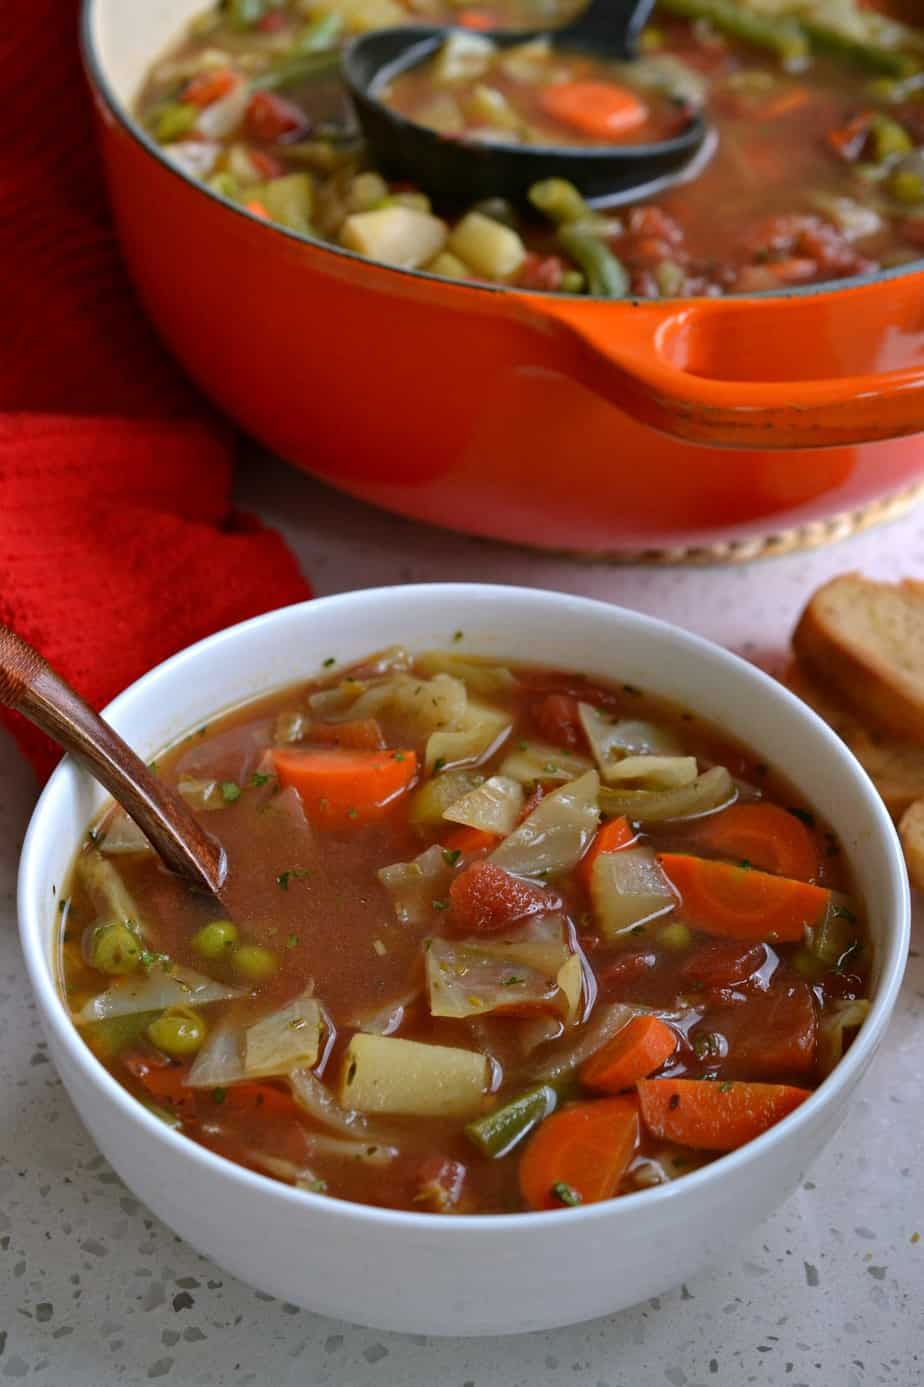 This tasty Vegetable Soup is the perfect pick me up for the winter blahs and for those with the coughs and sniffles.